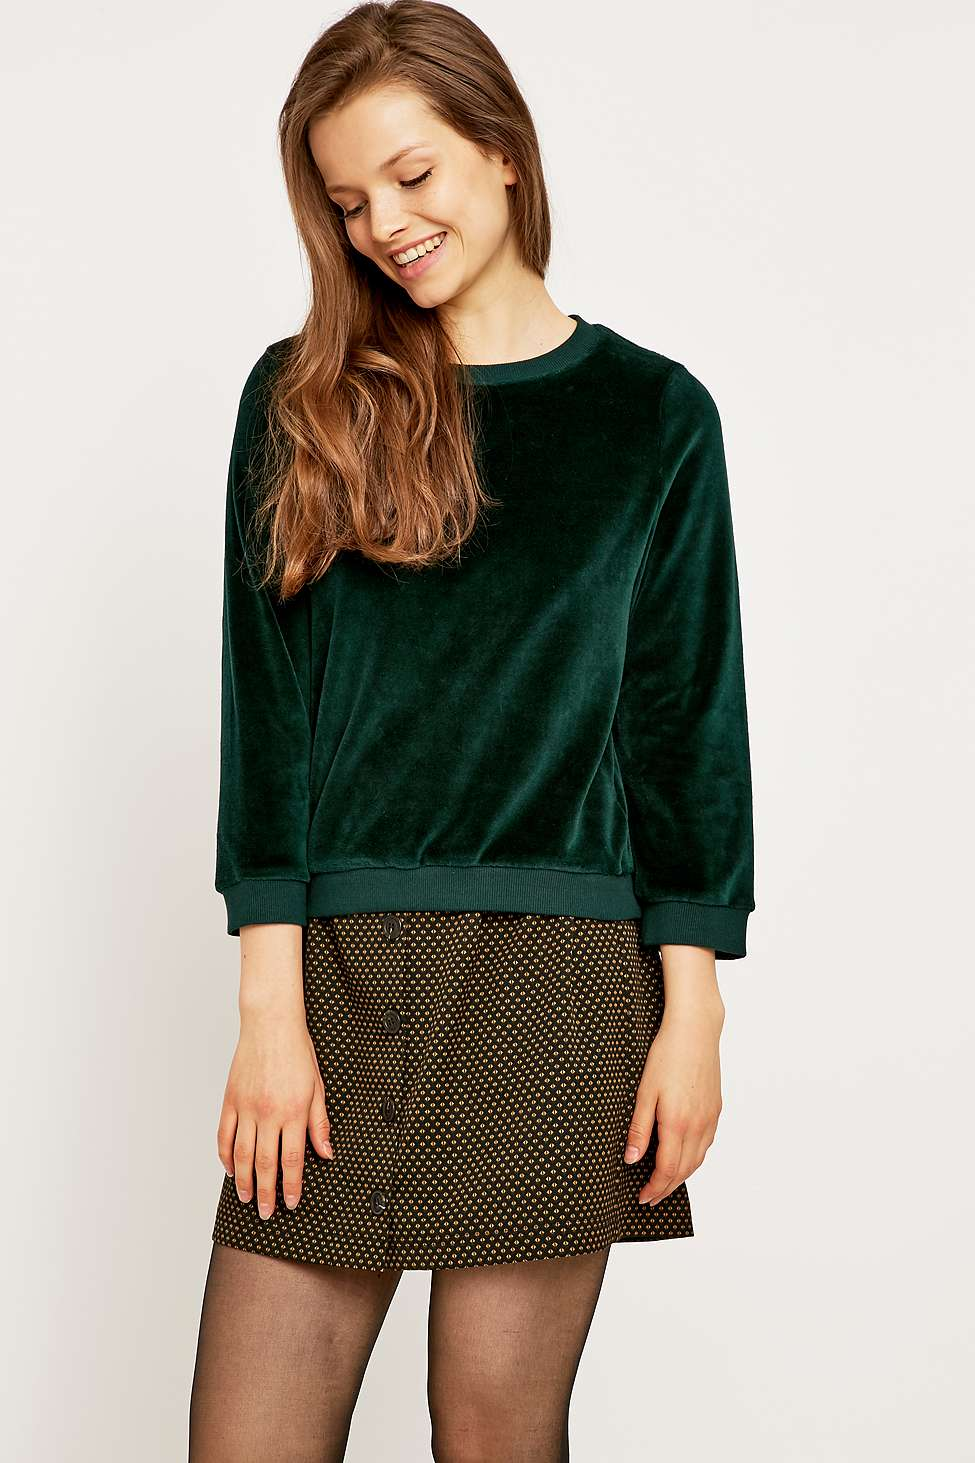 Urban outfitters - sweater